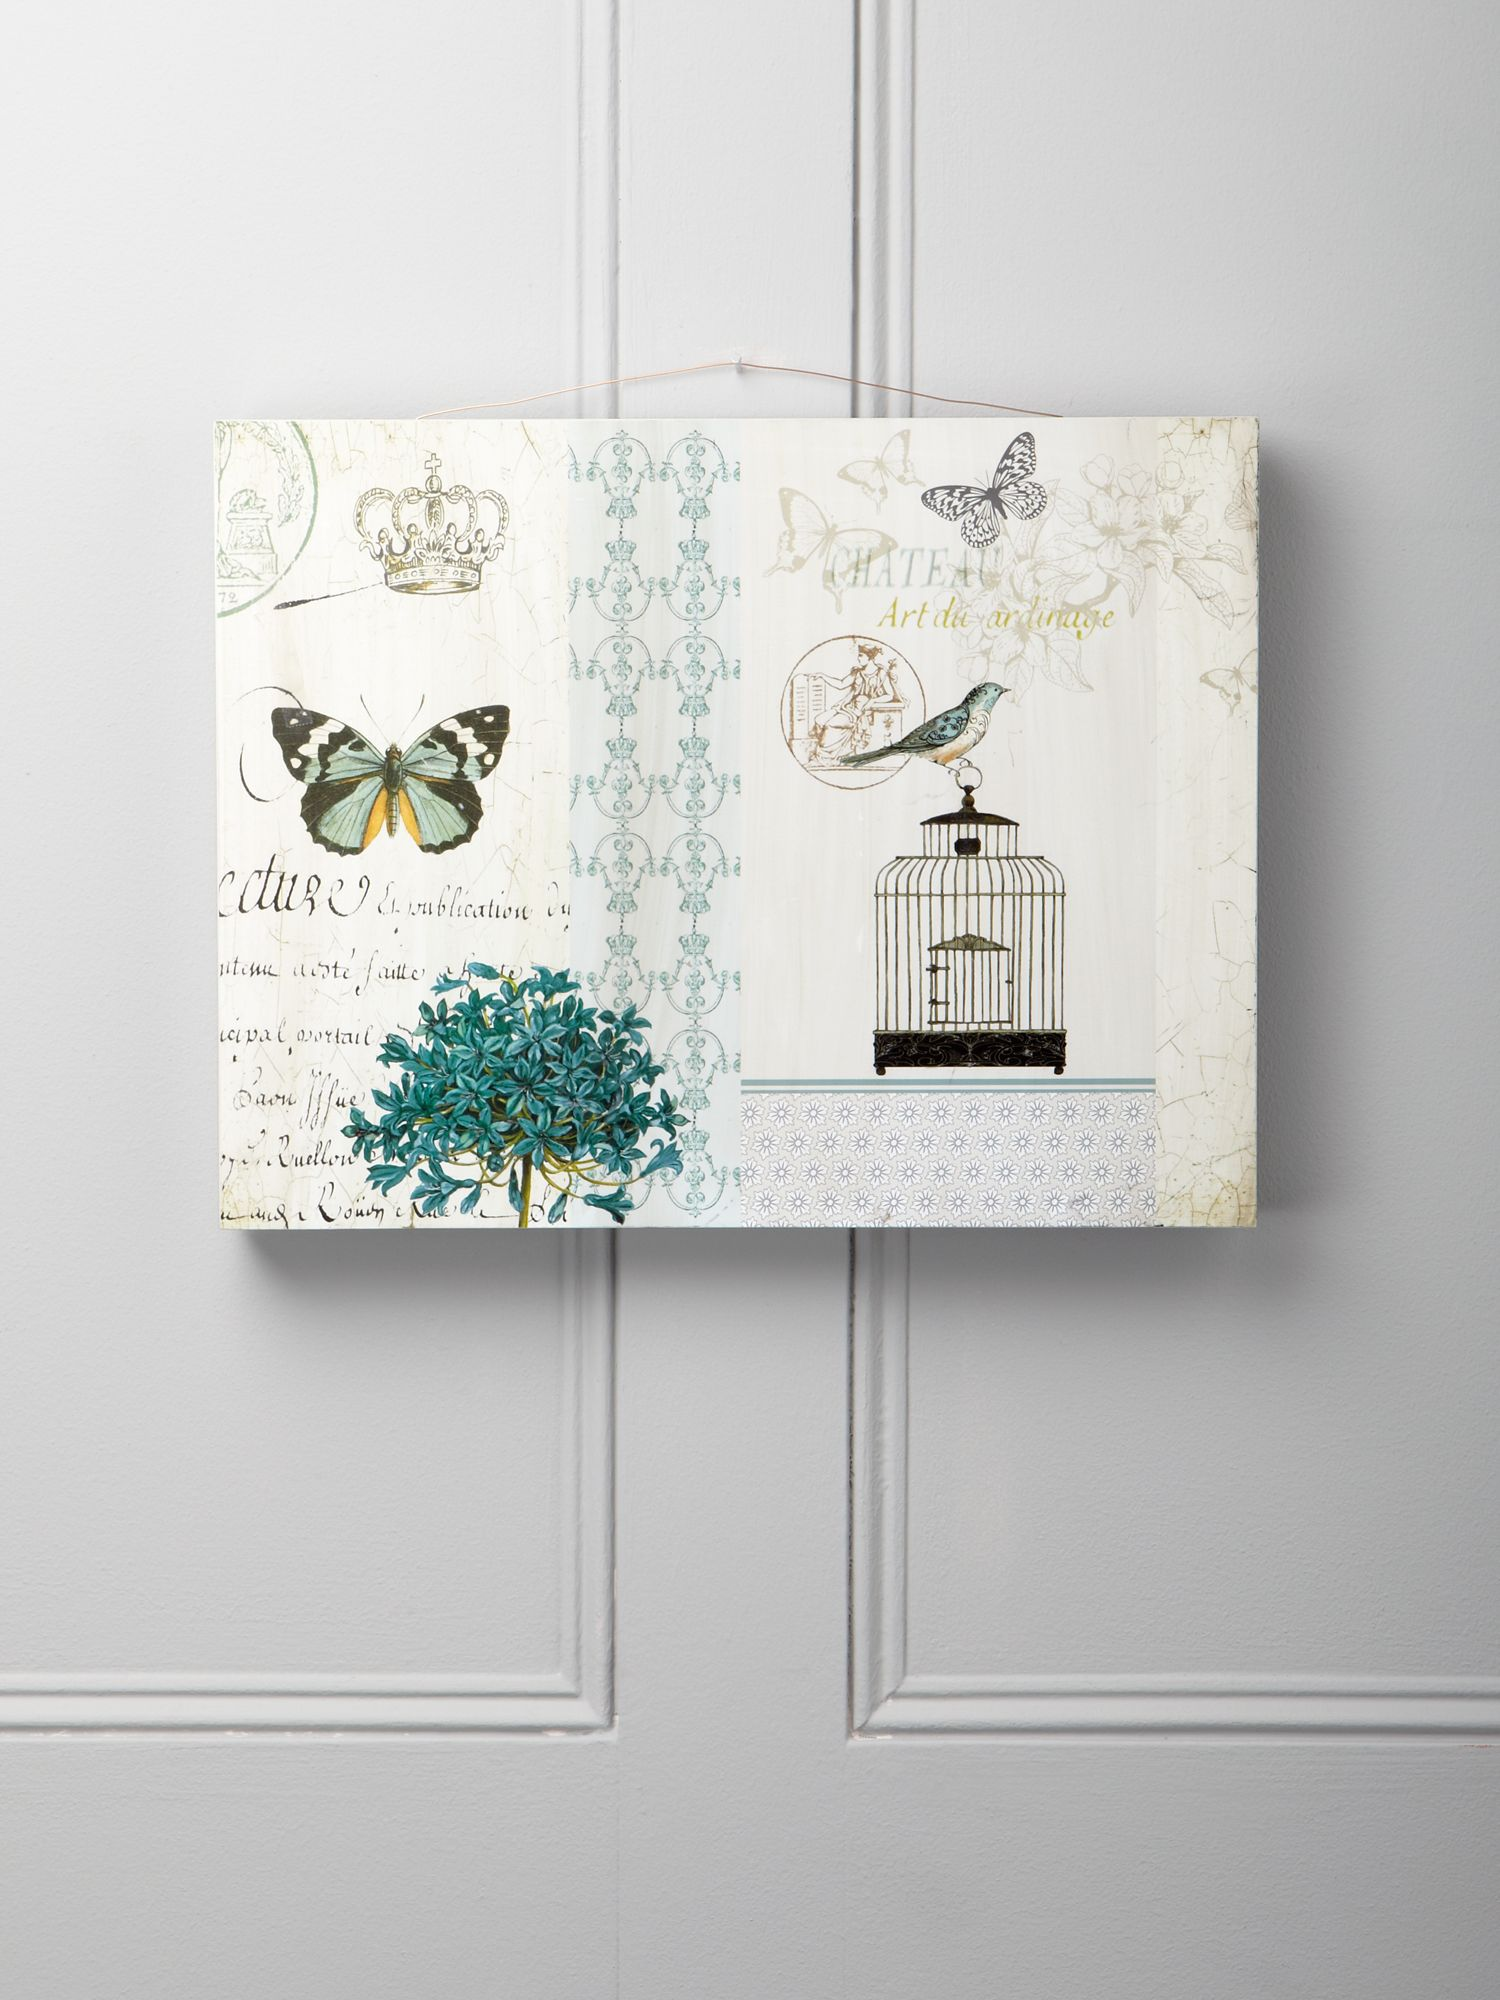 Bird and butterfly wall plaque